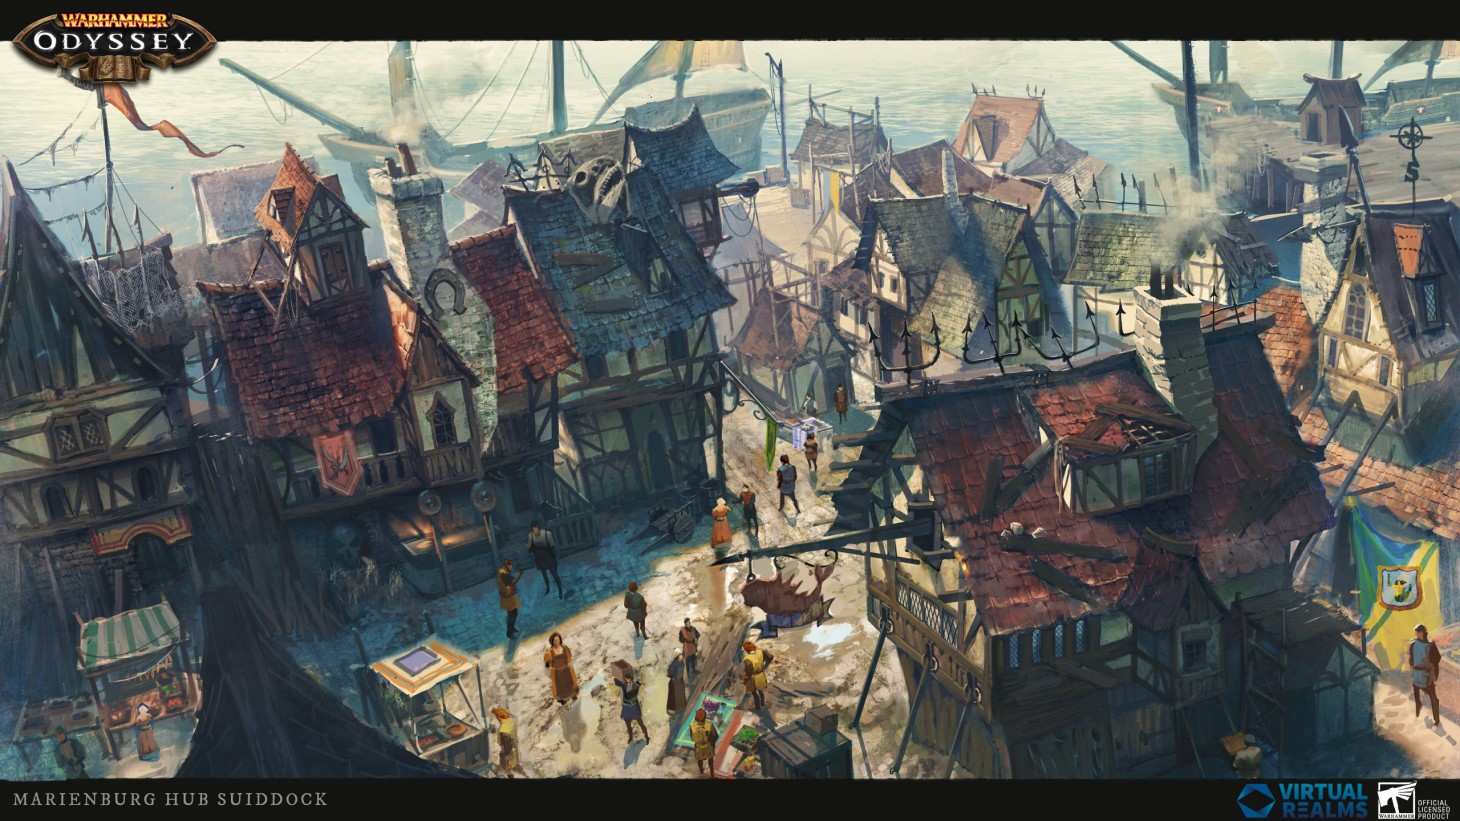 Warhammer Odyssey Brings A Mobile Mmorpg To The Old World